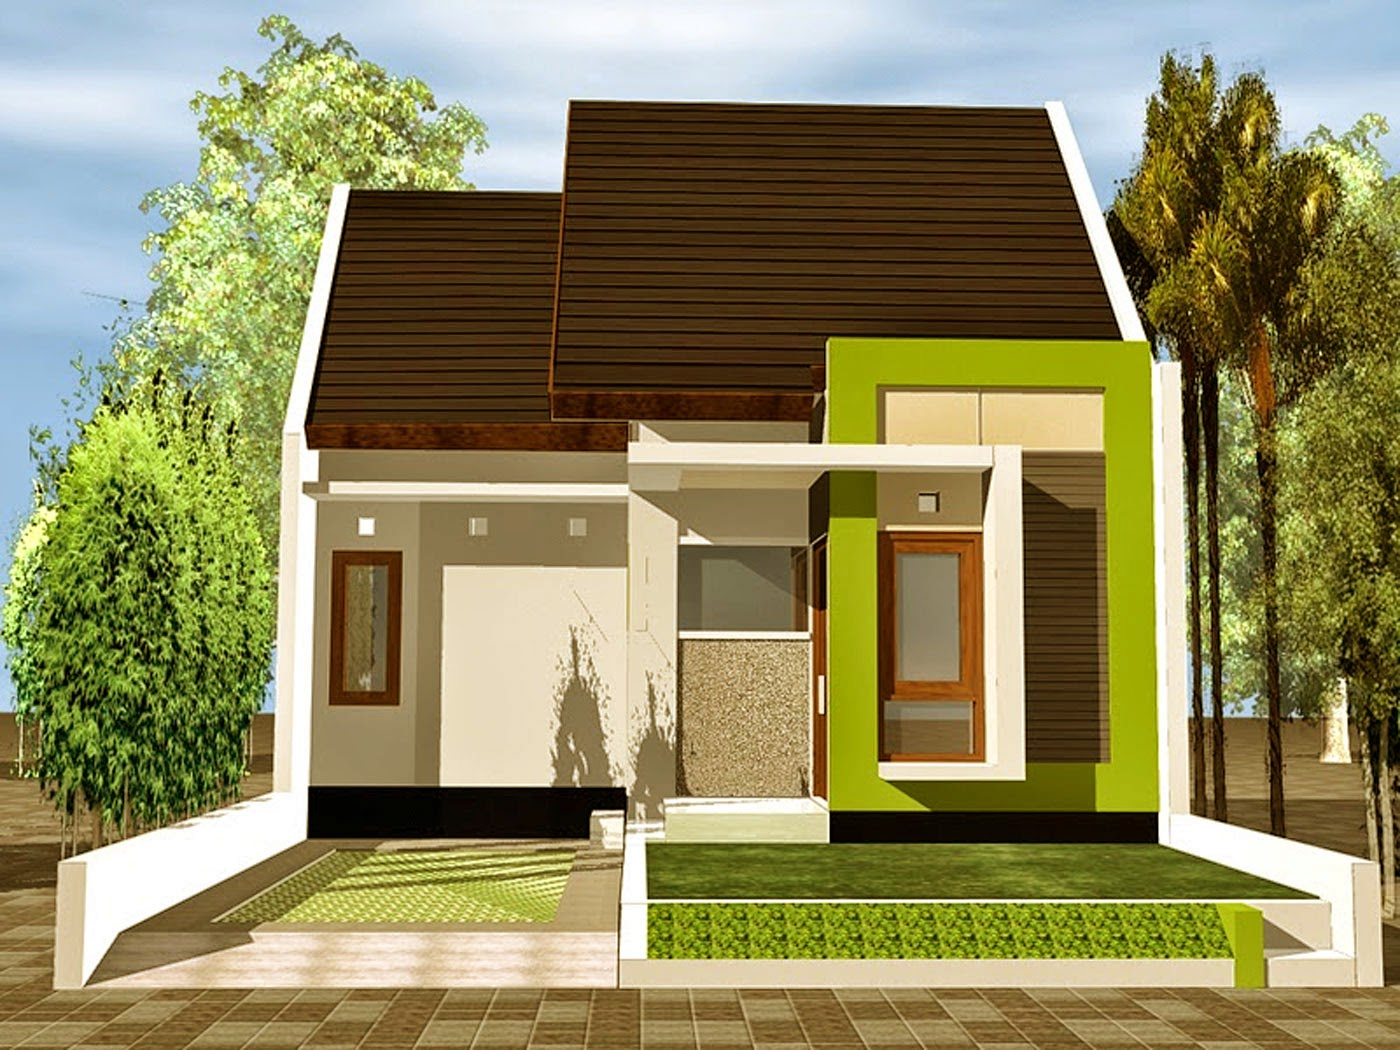 Model Rumah Minimalis Type 64 Wallpaper Dinding